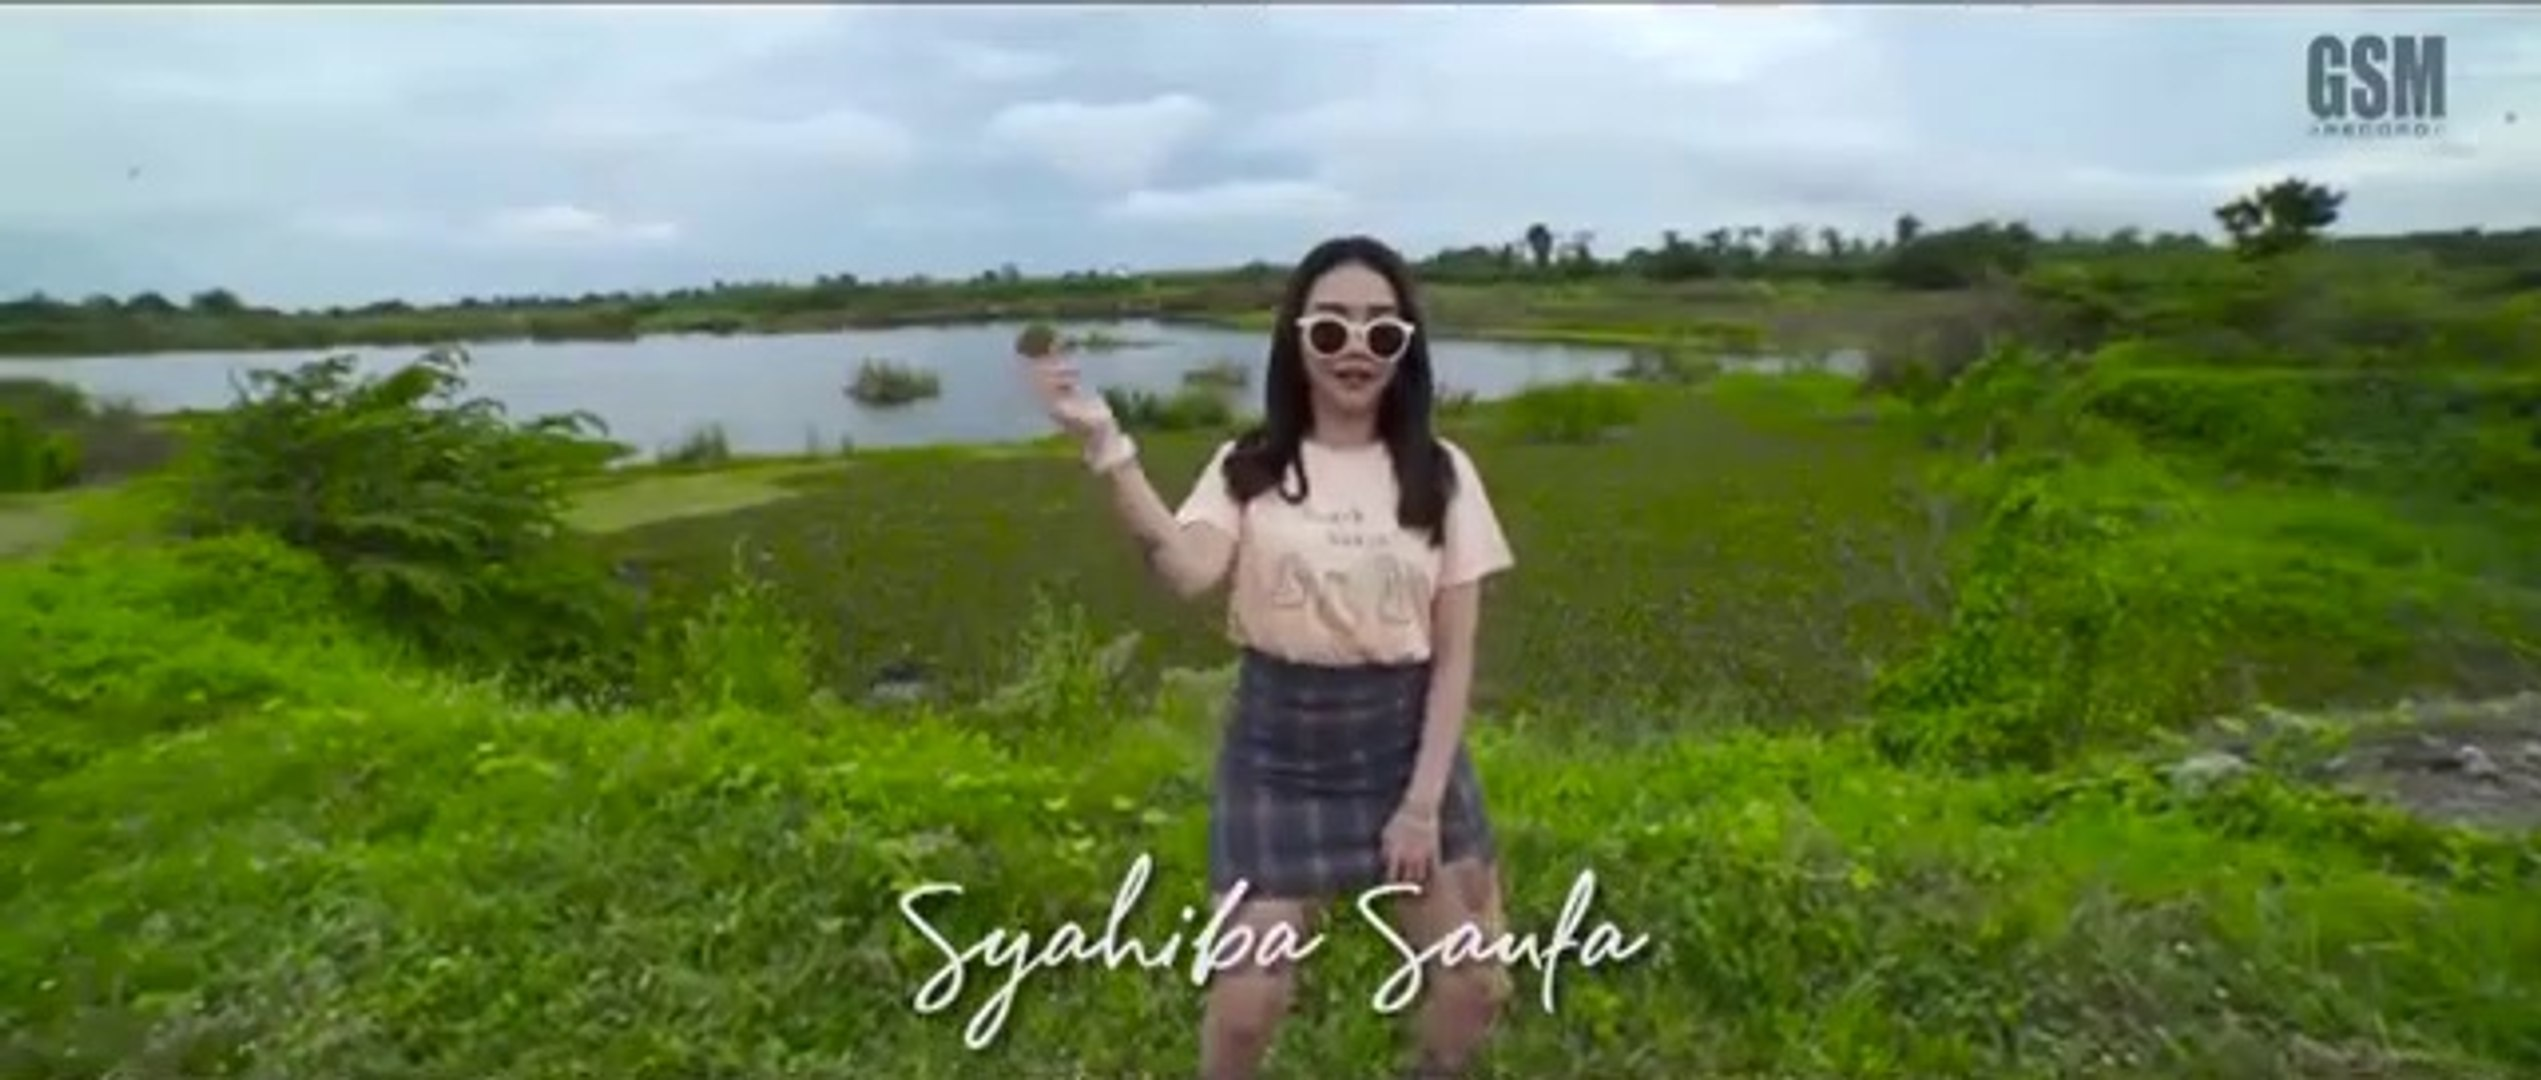 Syahiba Saufa Duda Araban Dj Kentrung Official Music Video Video Dailymotion